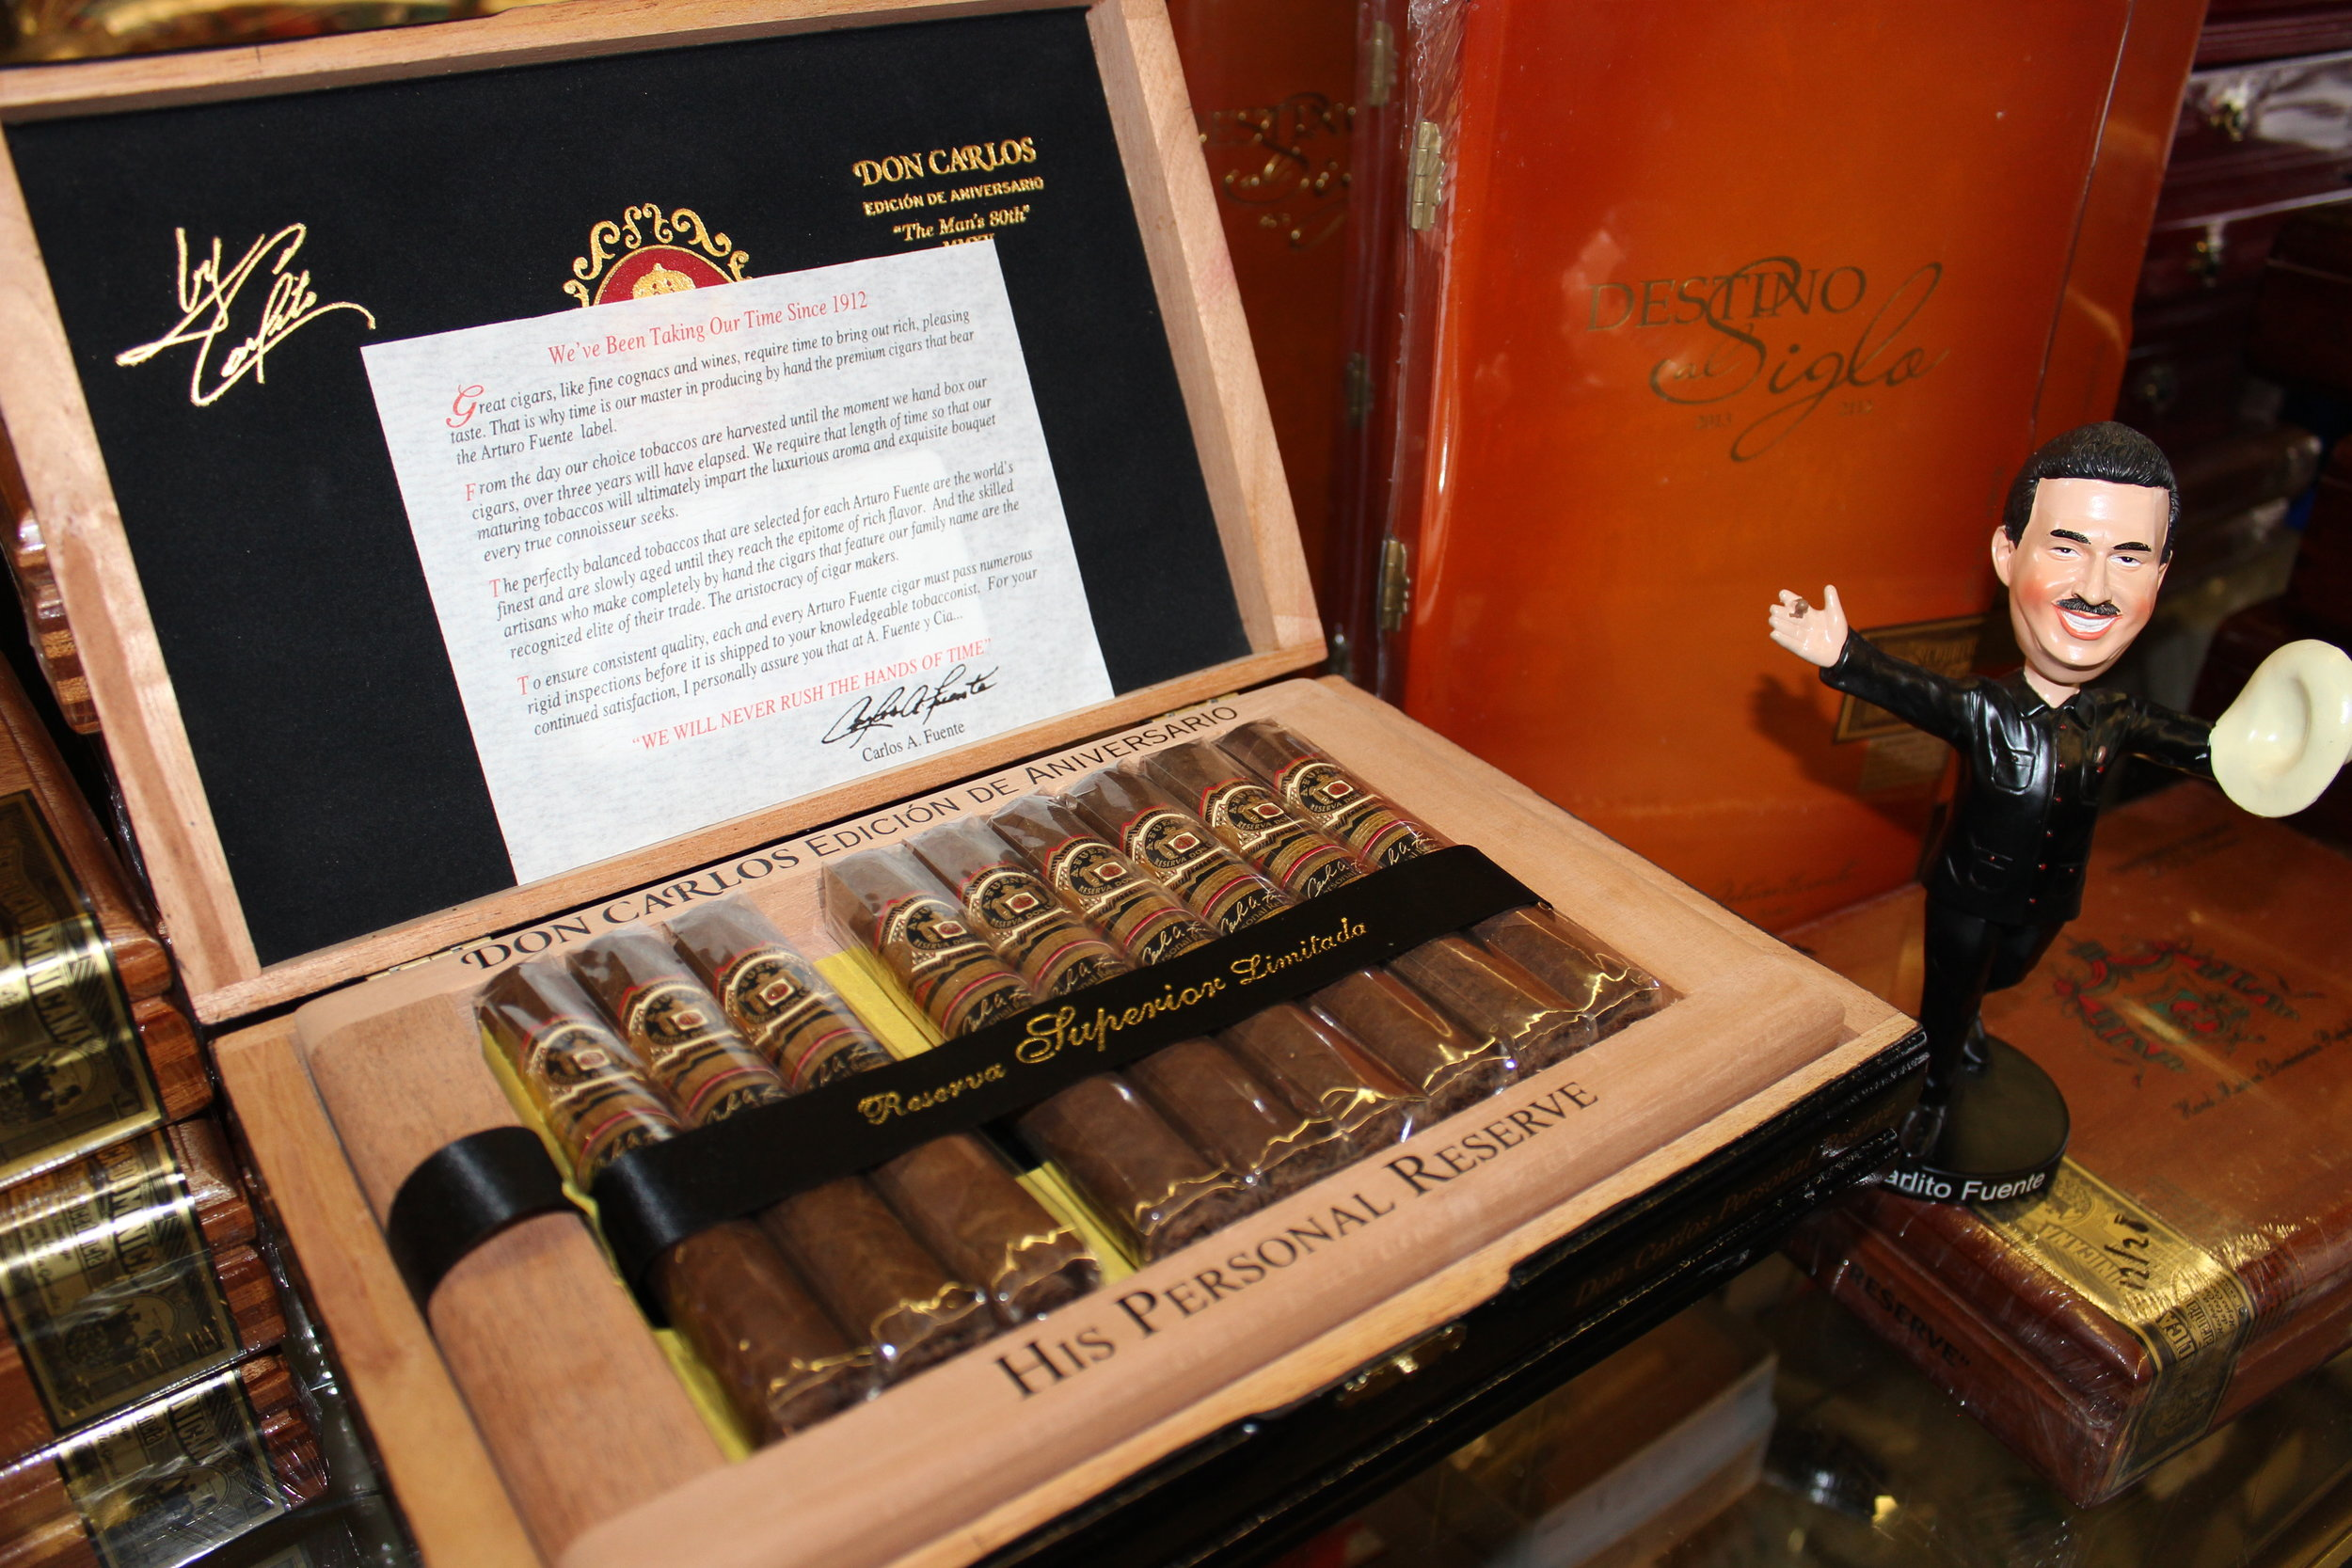 "The Fuente Don Carlos Personal Reserve, the Man's 80th: "" Don Carlos Fuente Sr. has always smoked a cigar made just for him at his factory. In 2015, to celebrate the 80th birthday of the patriarch, Tabacalera Fuente has released the private blend to the public in a limited edition called Don Carlos Personal Reserve. This Robusto cigar is packaged in glossy black boxes and includes a pair of white gloves."""